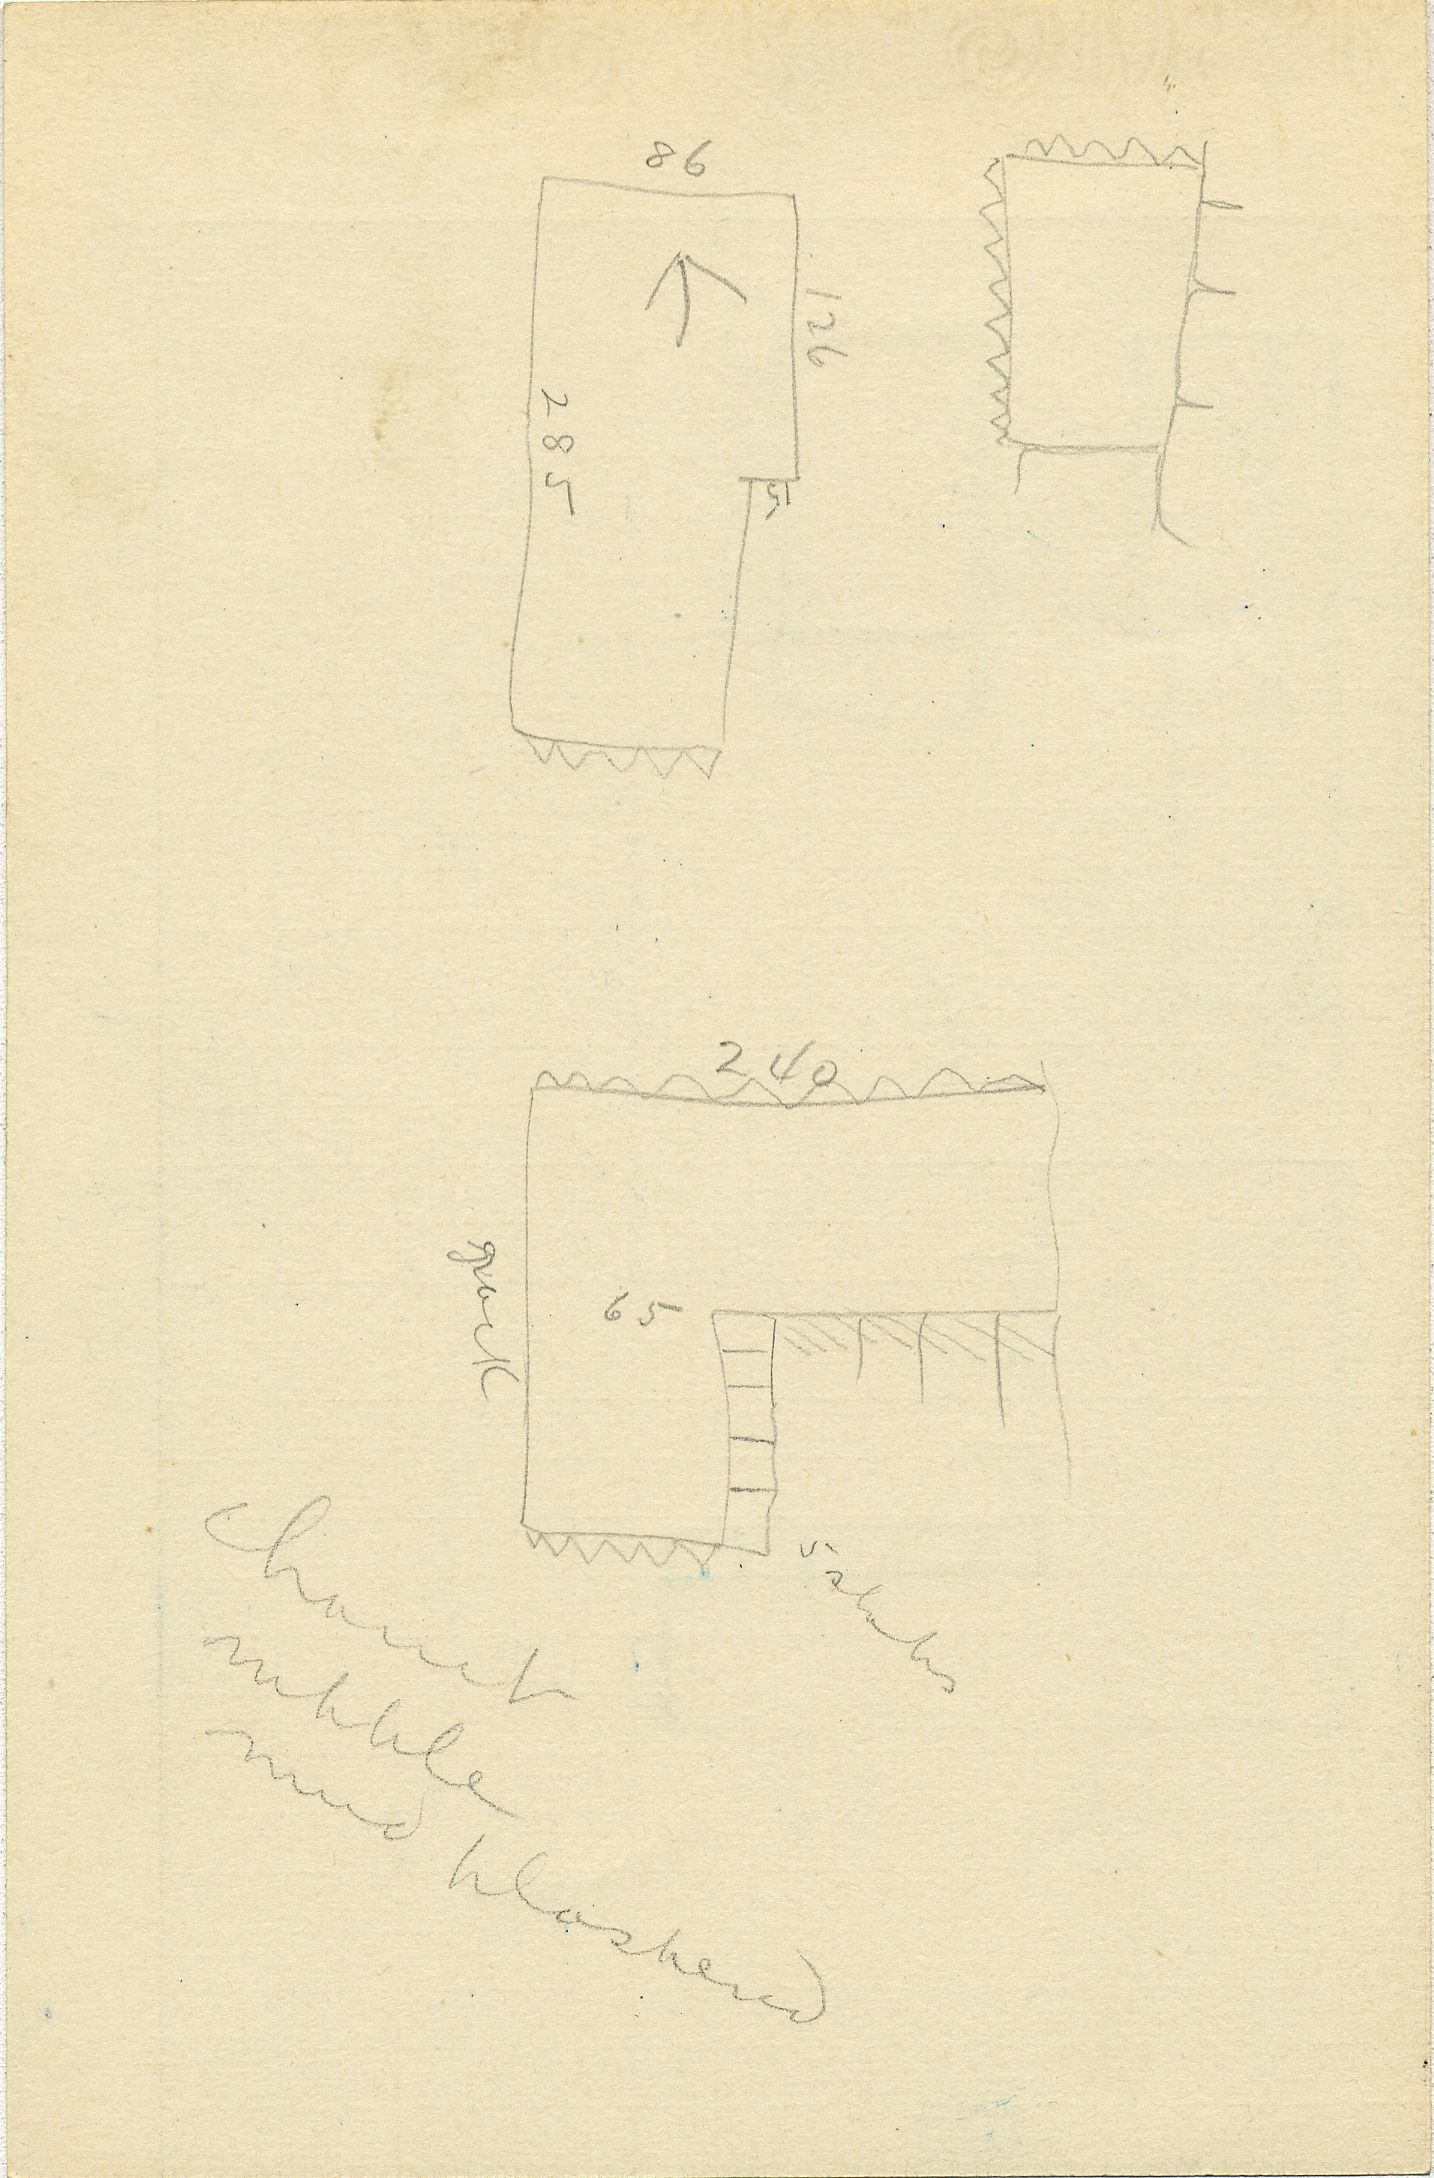 Maps and plans: G 2336, Shaft Y, notes